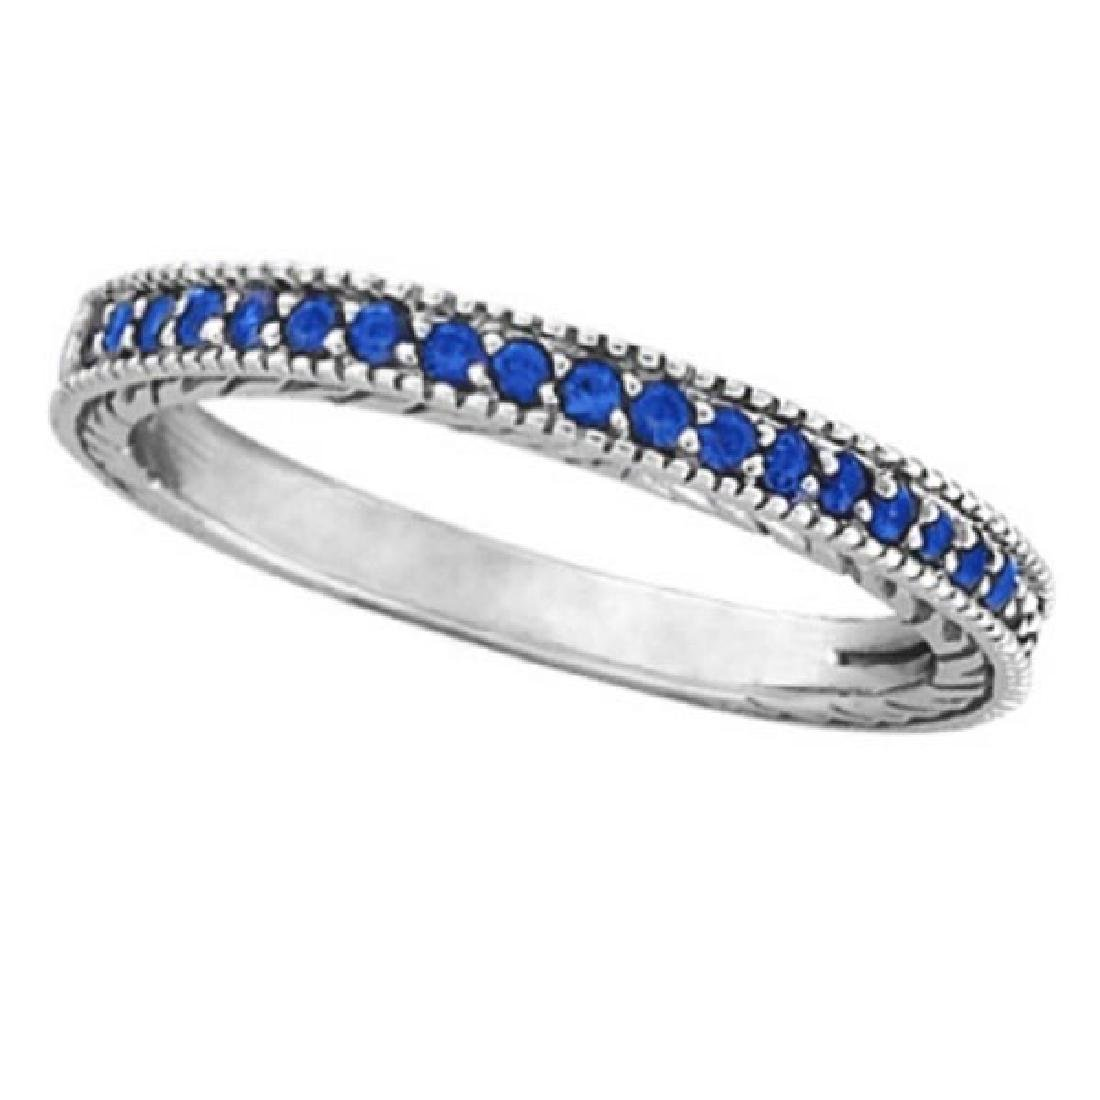 Blue Sapphire Stackable Ring With Milgrain Edges in 14k